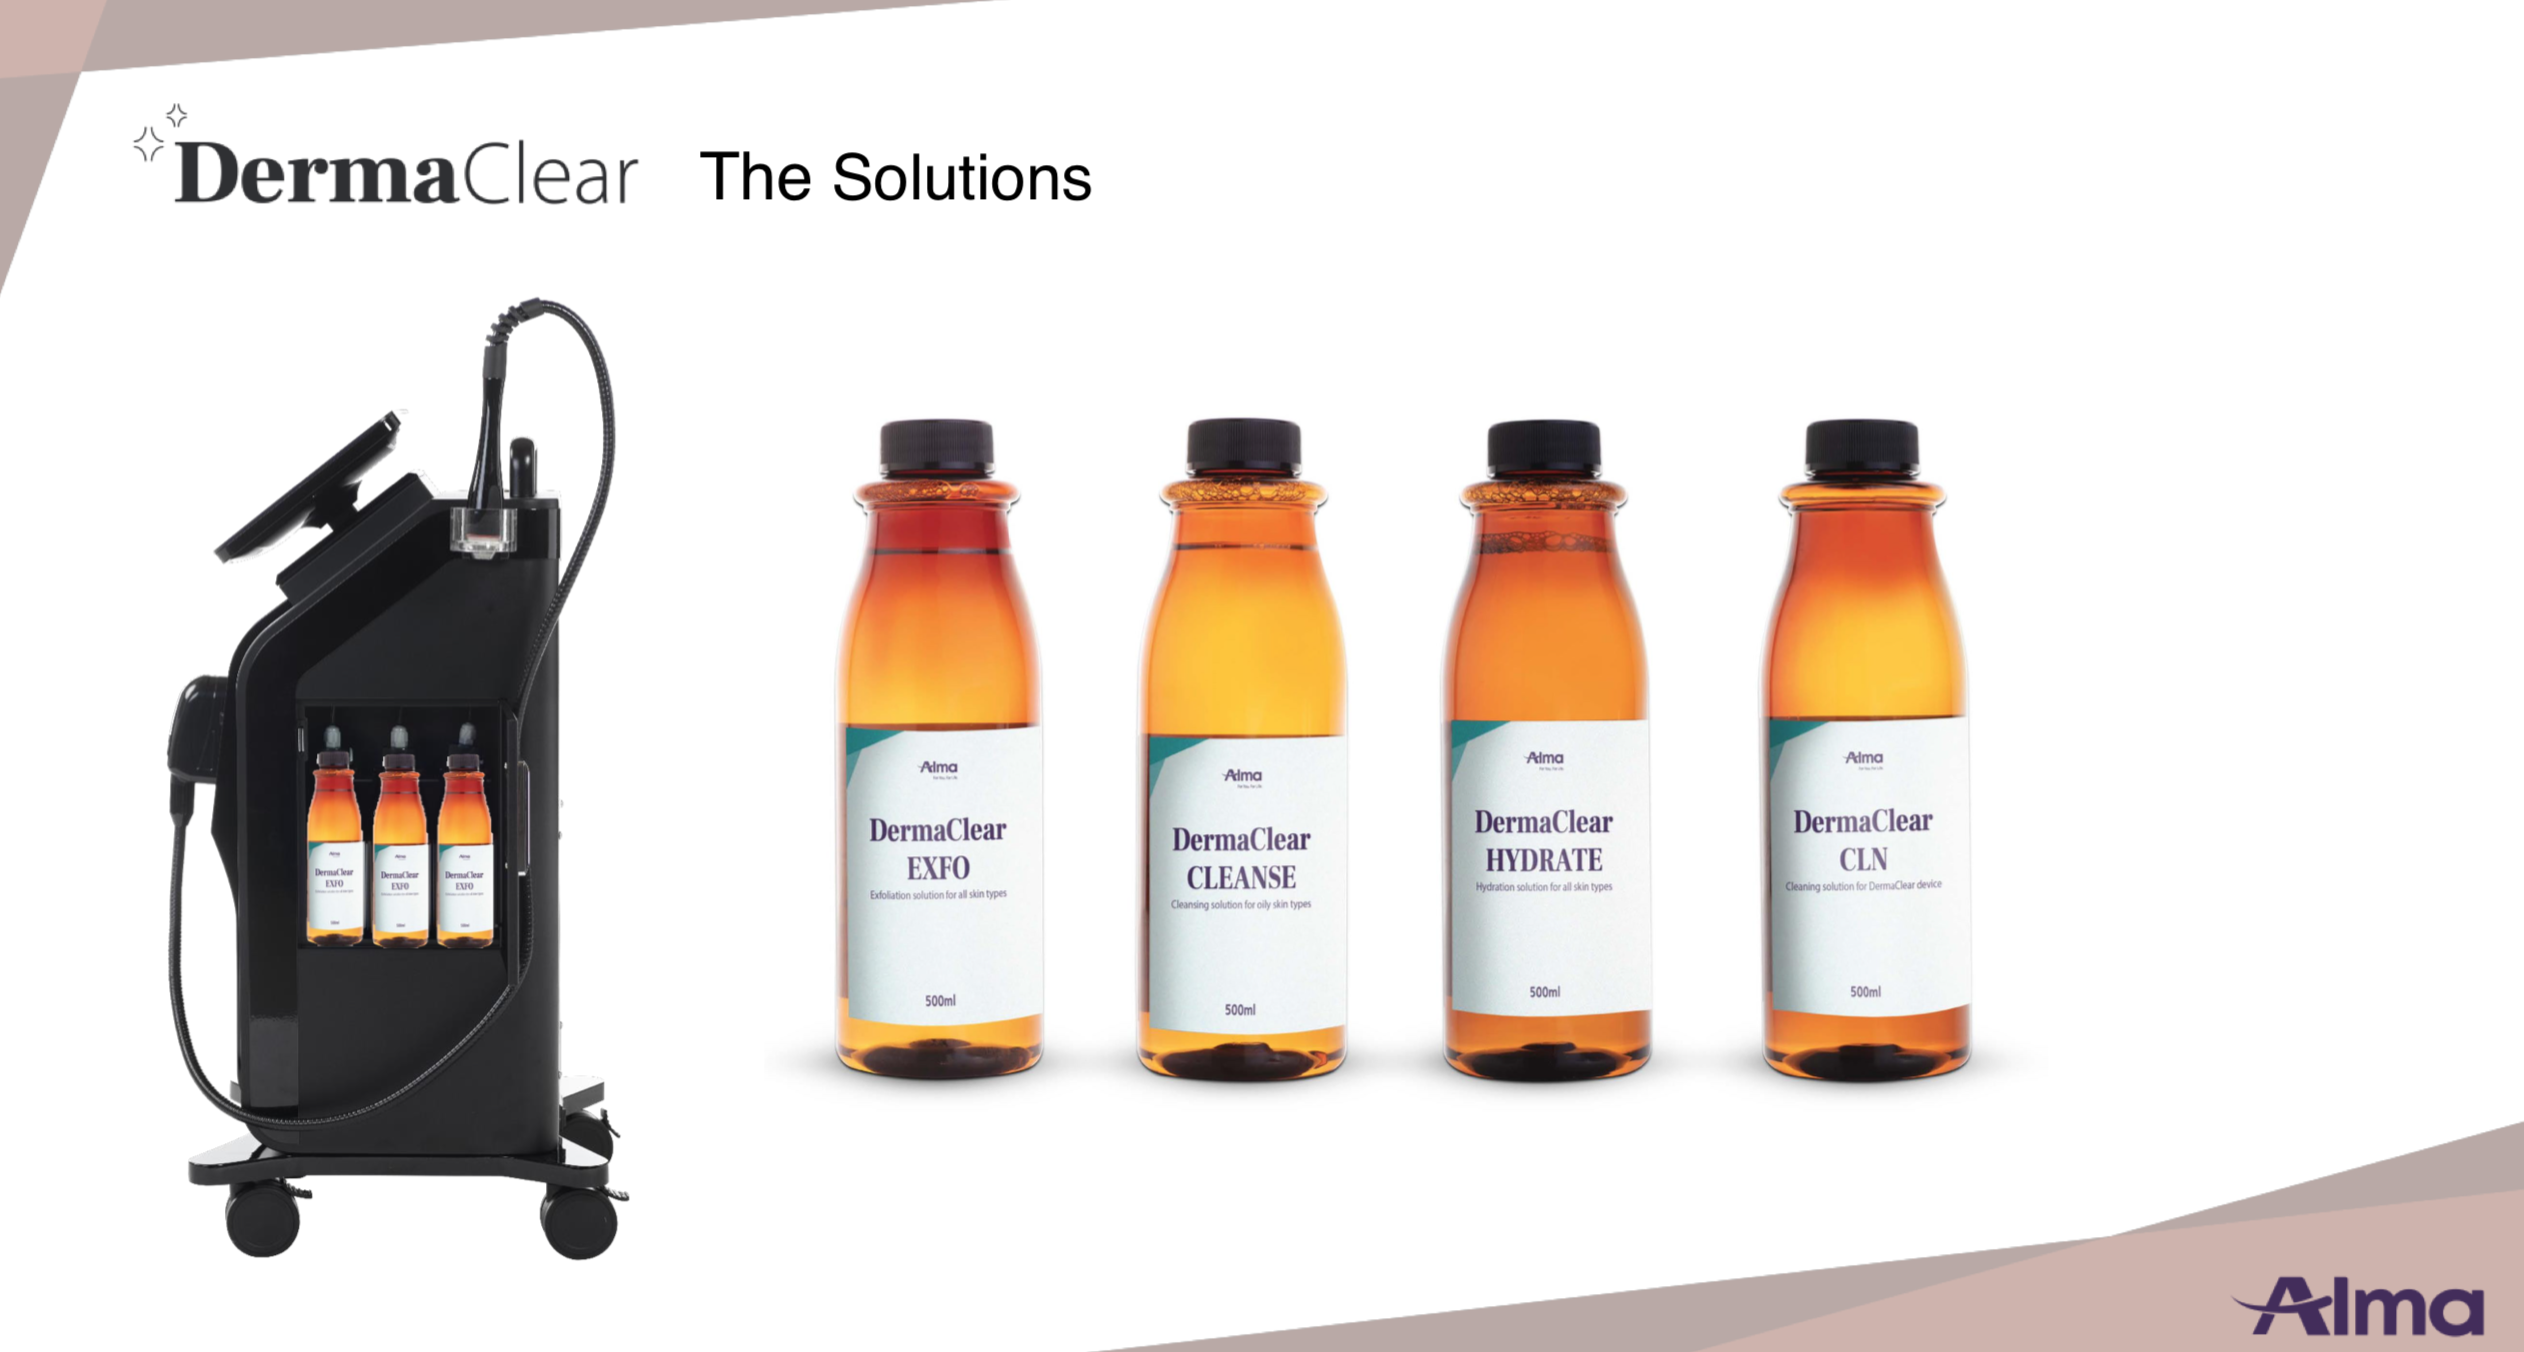 DermaClear The Solutions